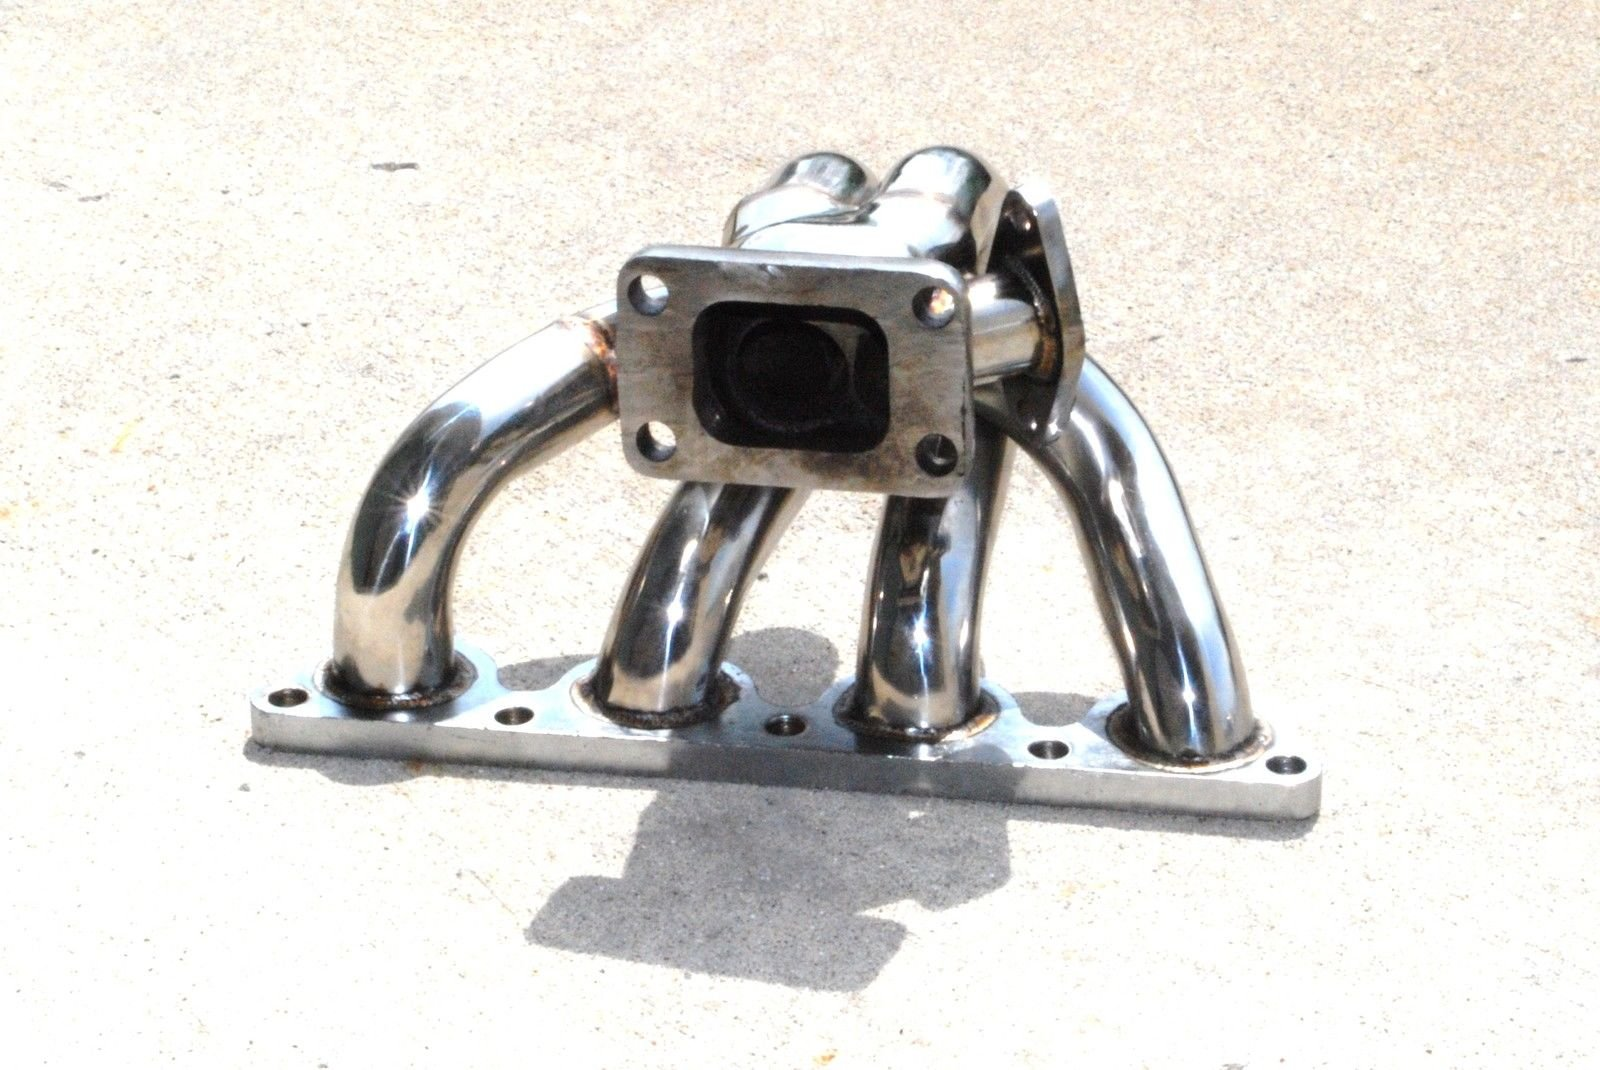 Tubular Turbo Manifold Stainless Steel fits88-91 Honda CRX /88-00 Civic D15/D16 by emusa (Image #2)